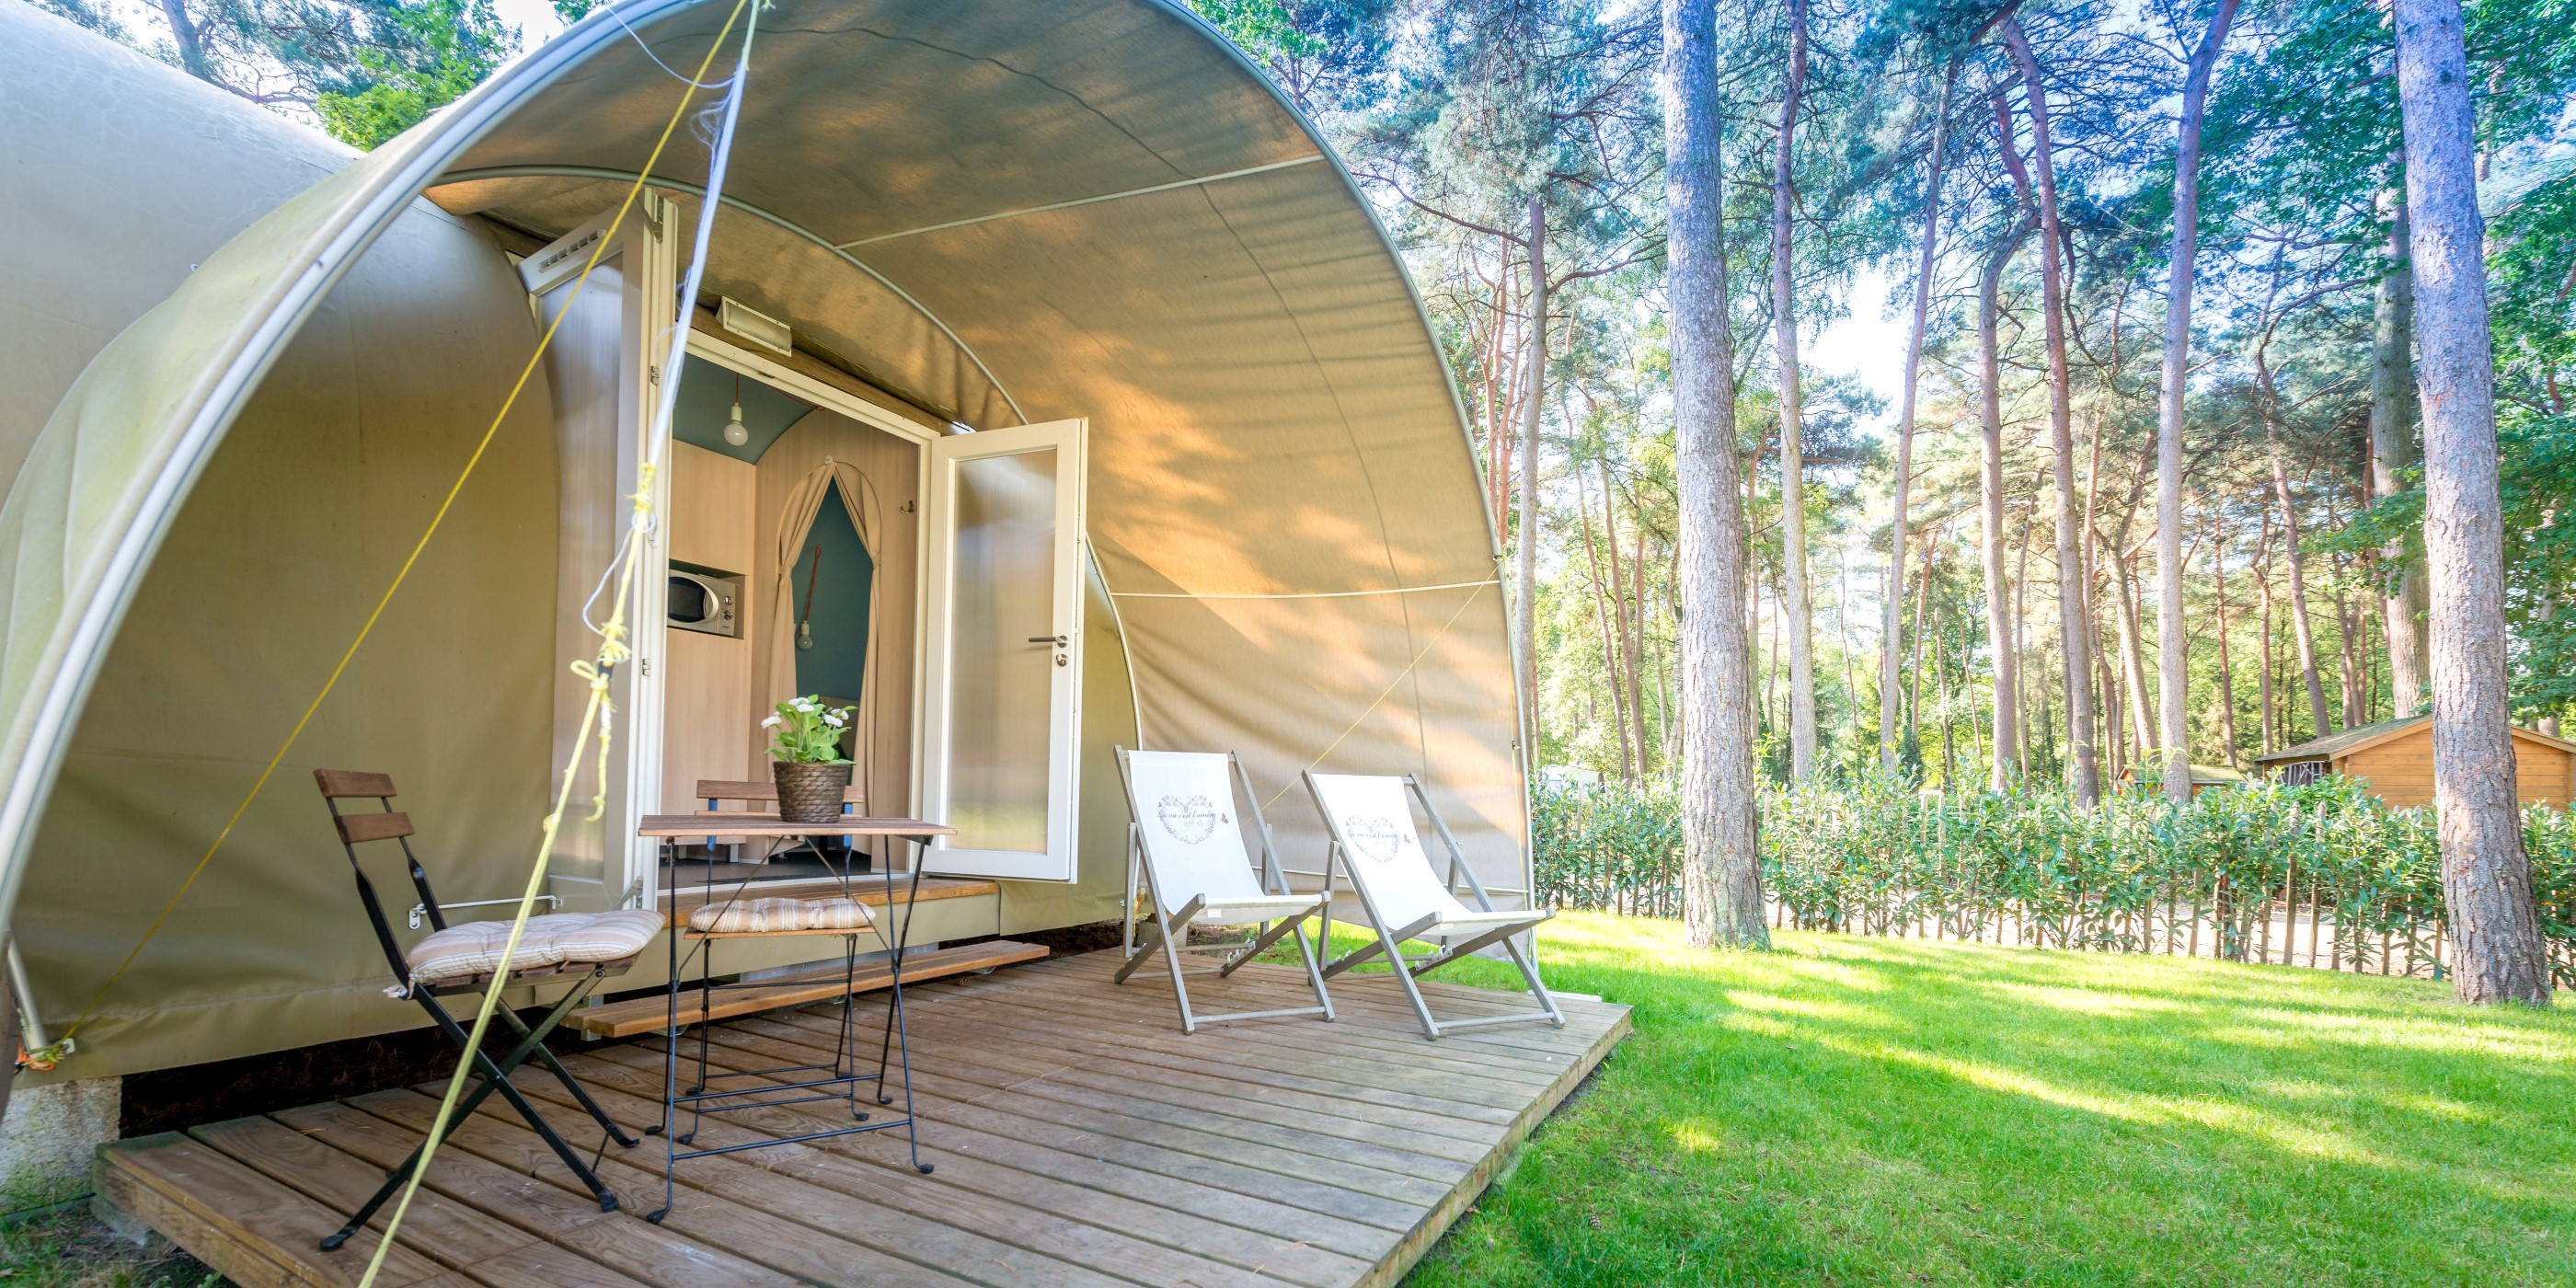 4-persoons Coco tent op camping in Limburg